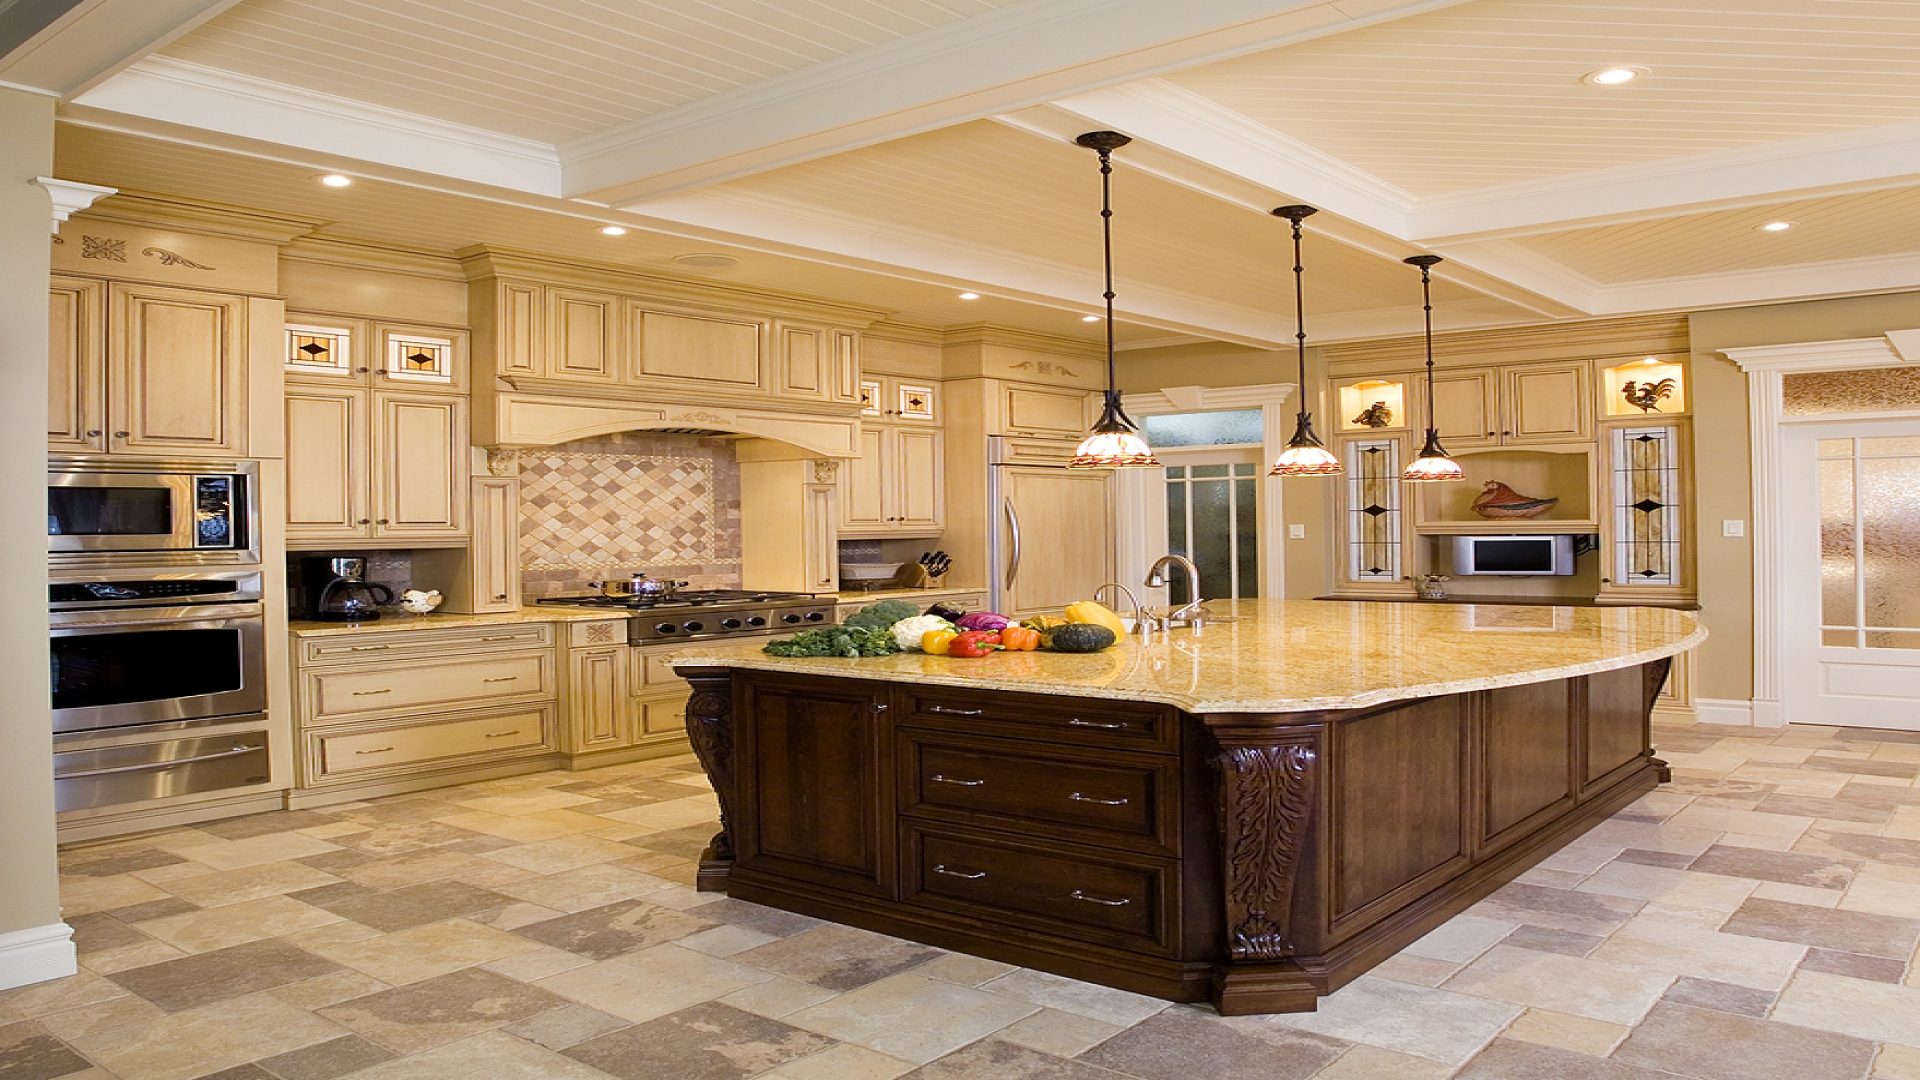 Kitchen remodeling ideas pictures photos for Best kitchen remodel ideas